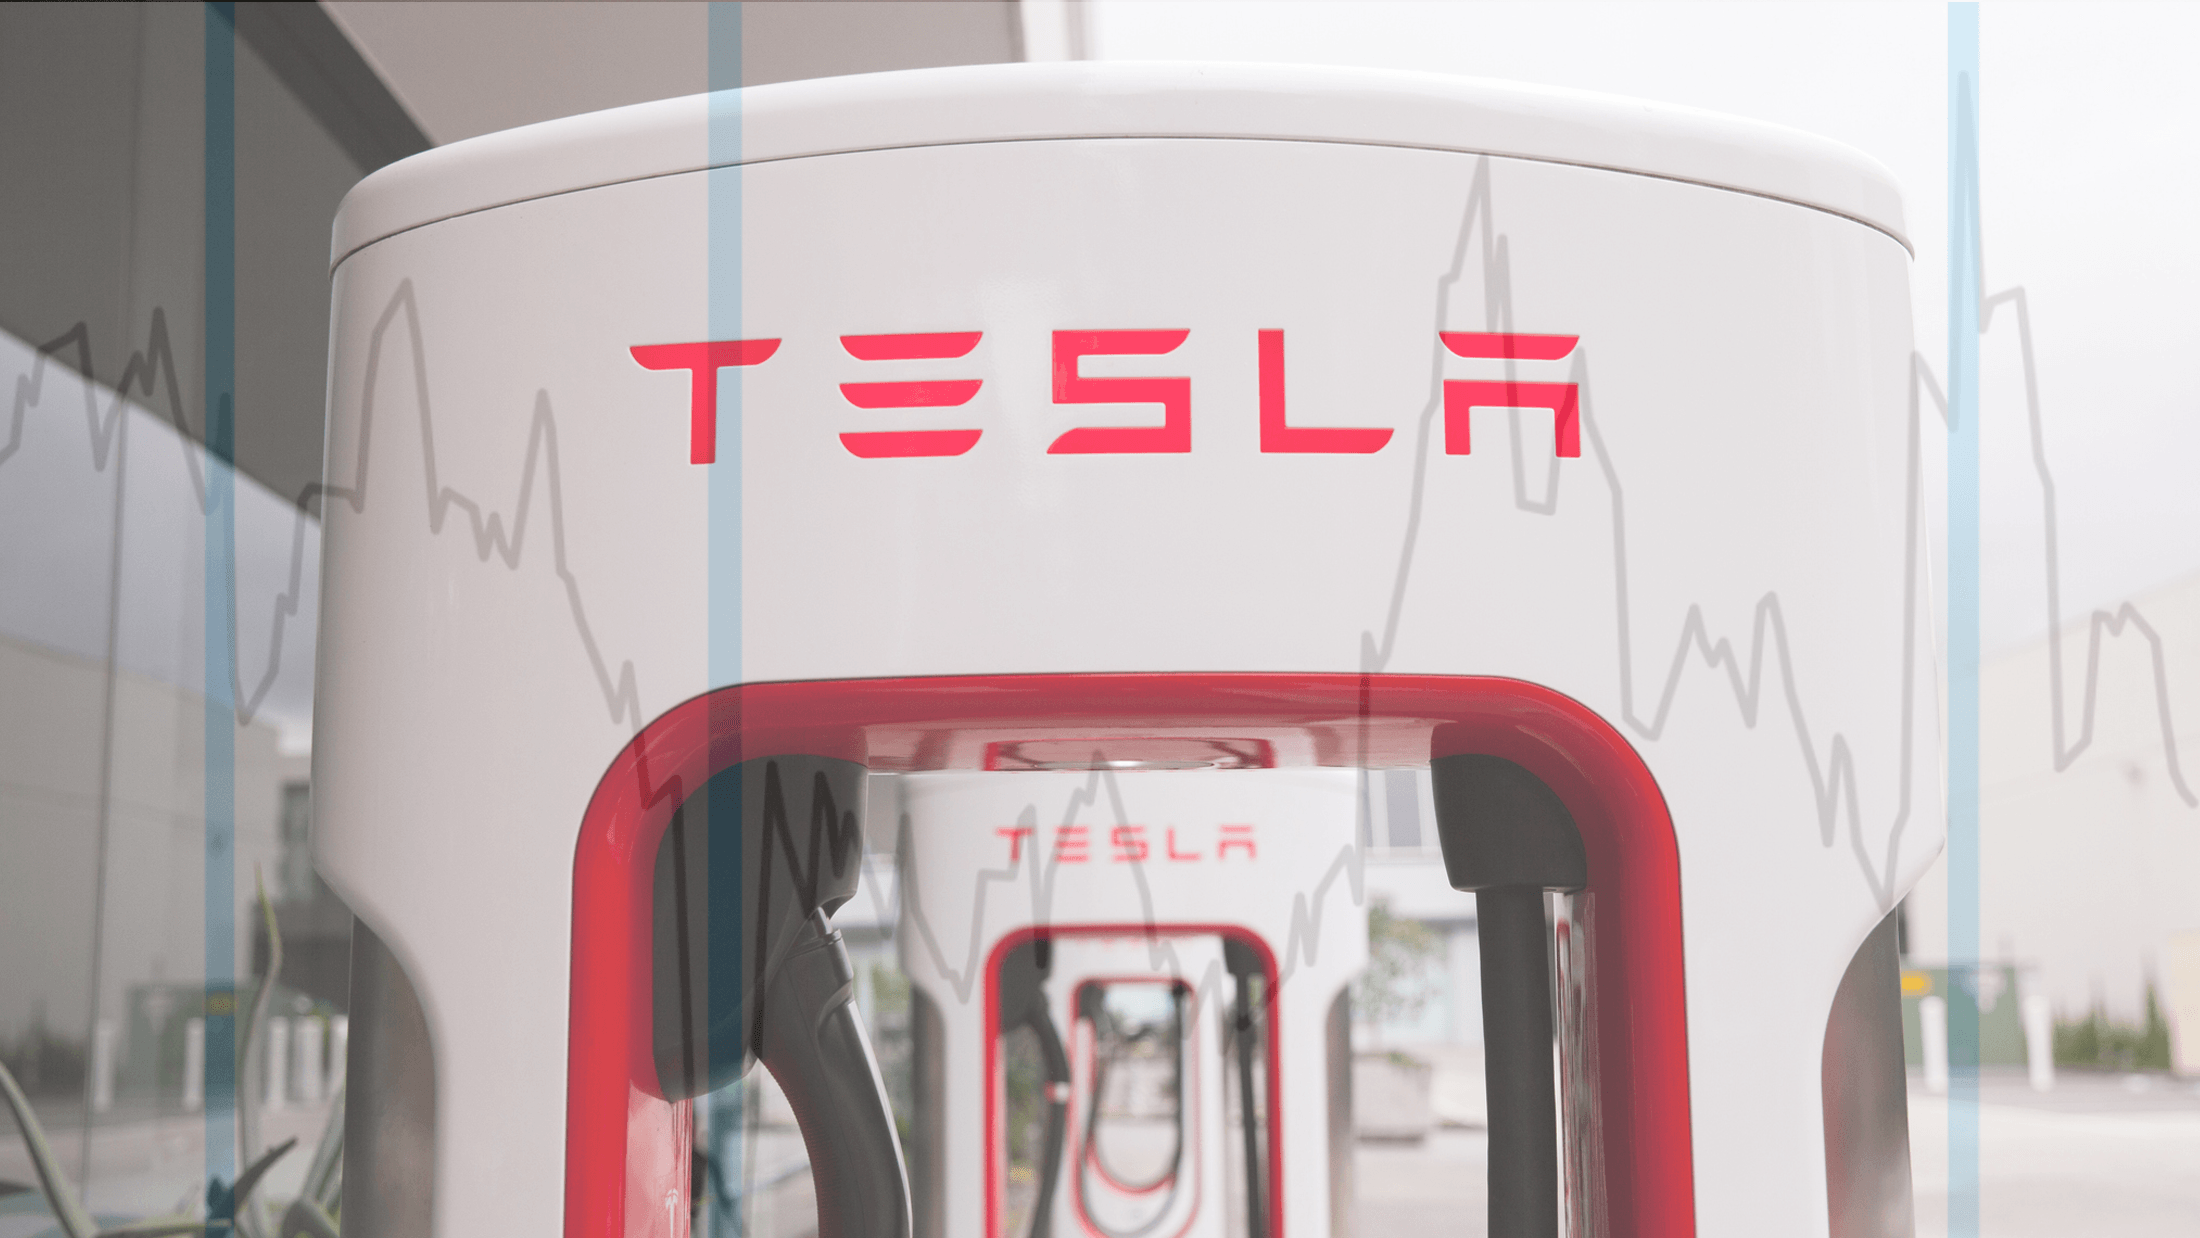 Does Twitter Conversation Affect Tesla's Stock Price